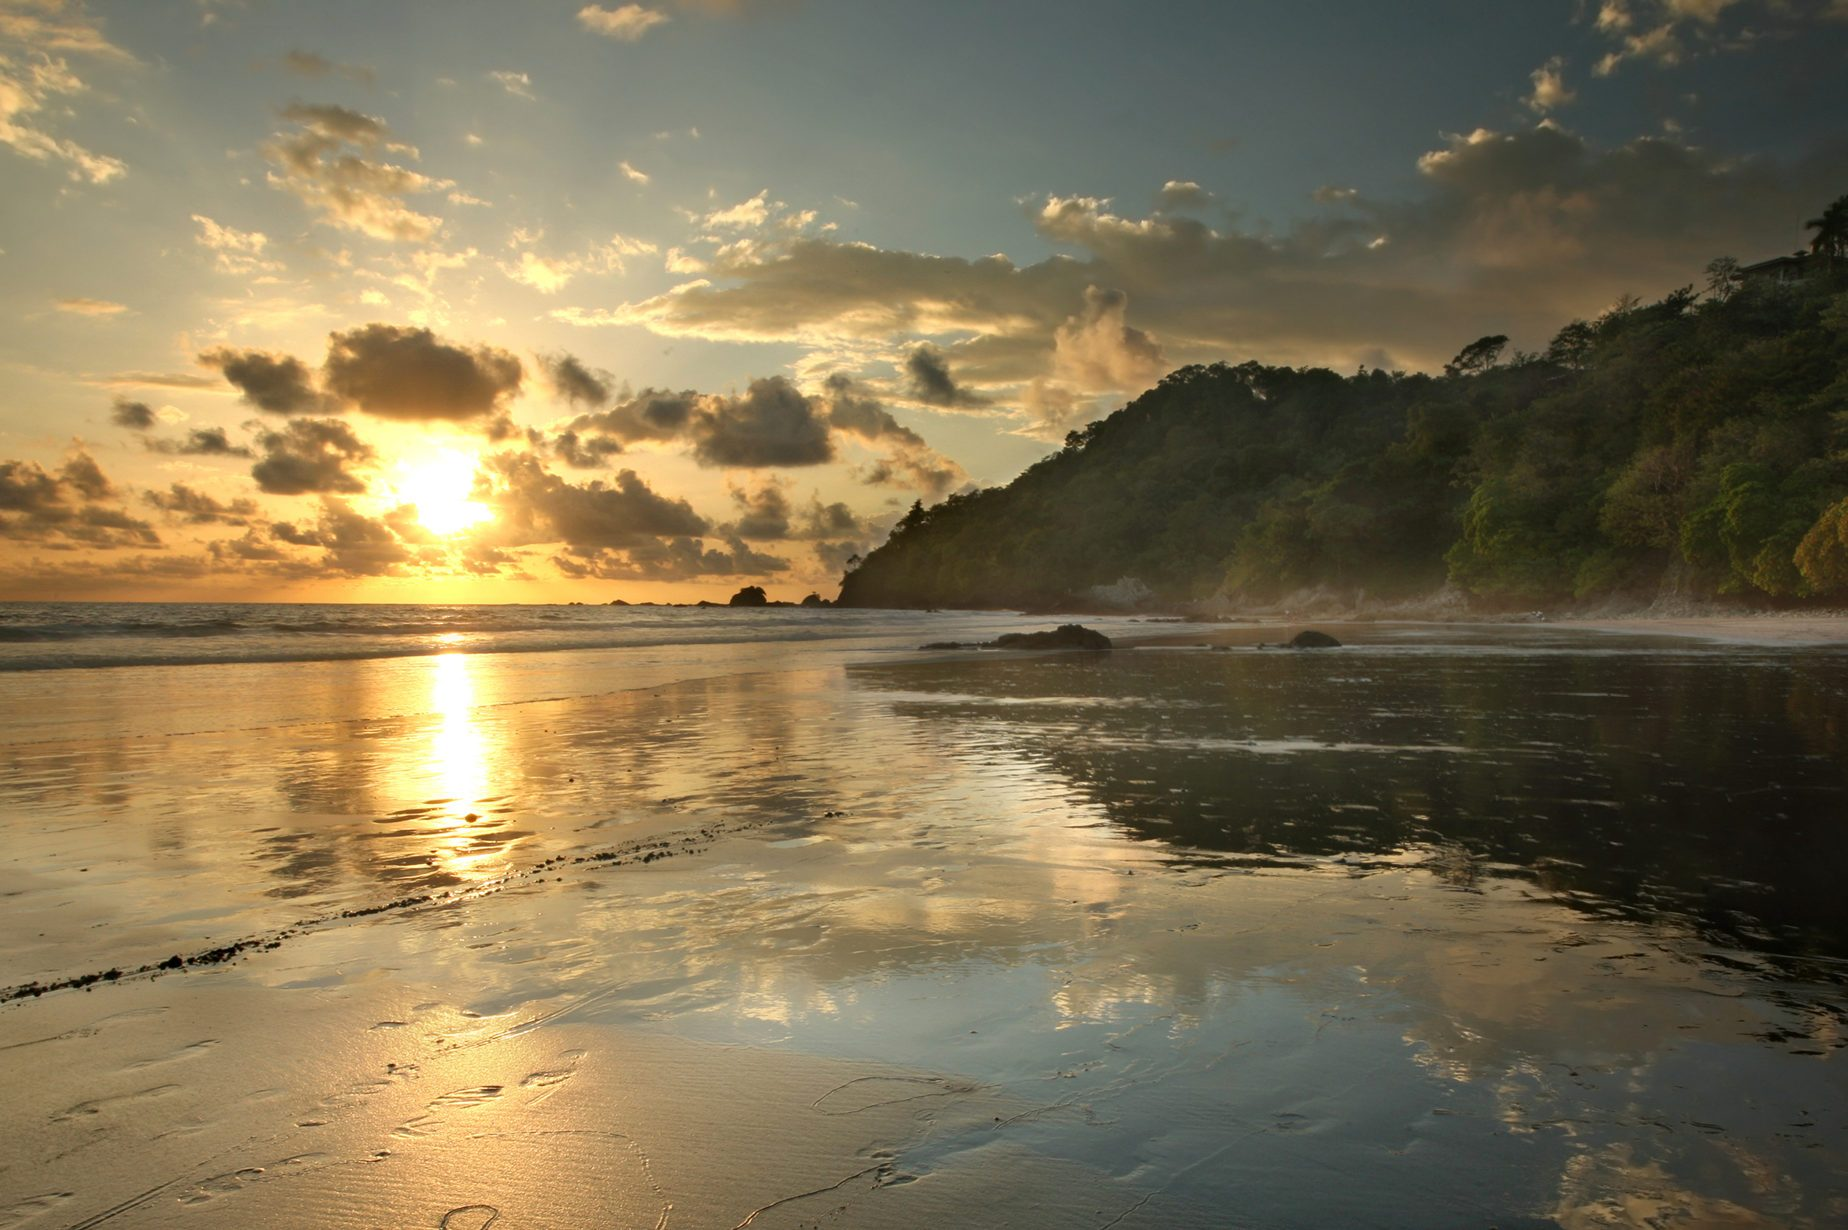 Jungle beach in Costa Rica at sunset, Manuel Antonio Park